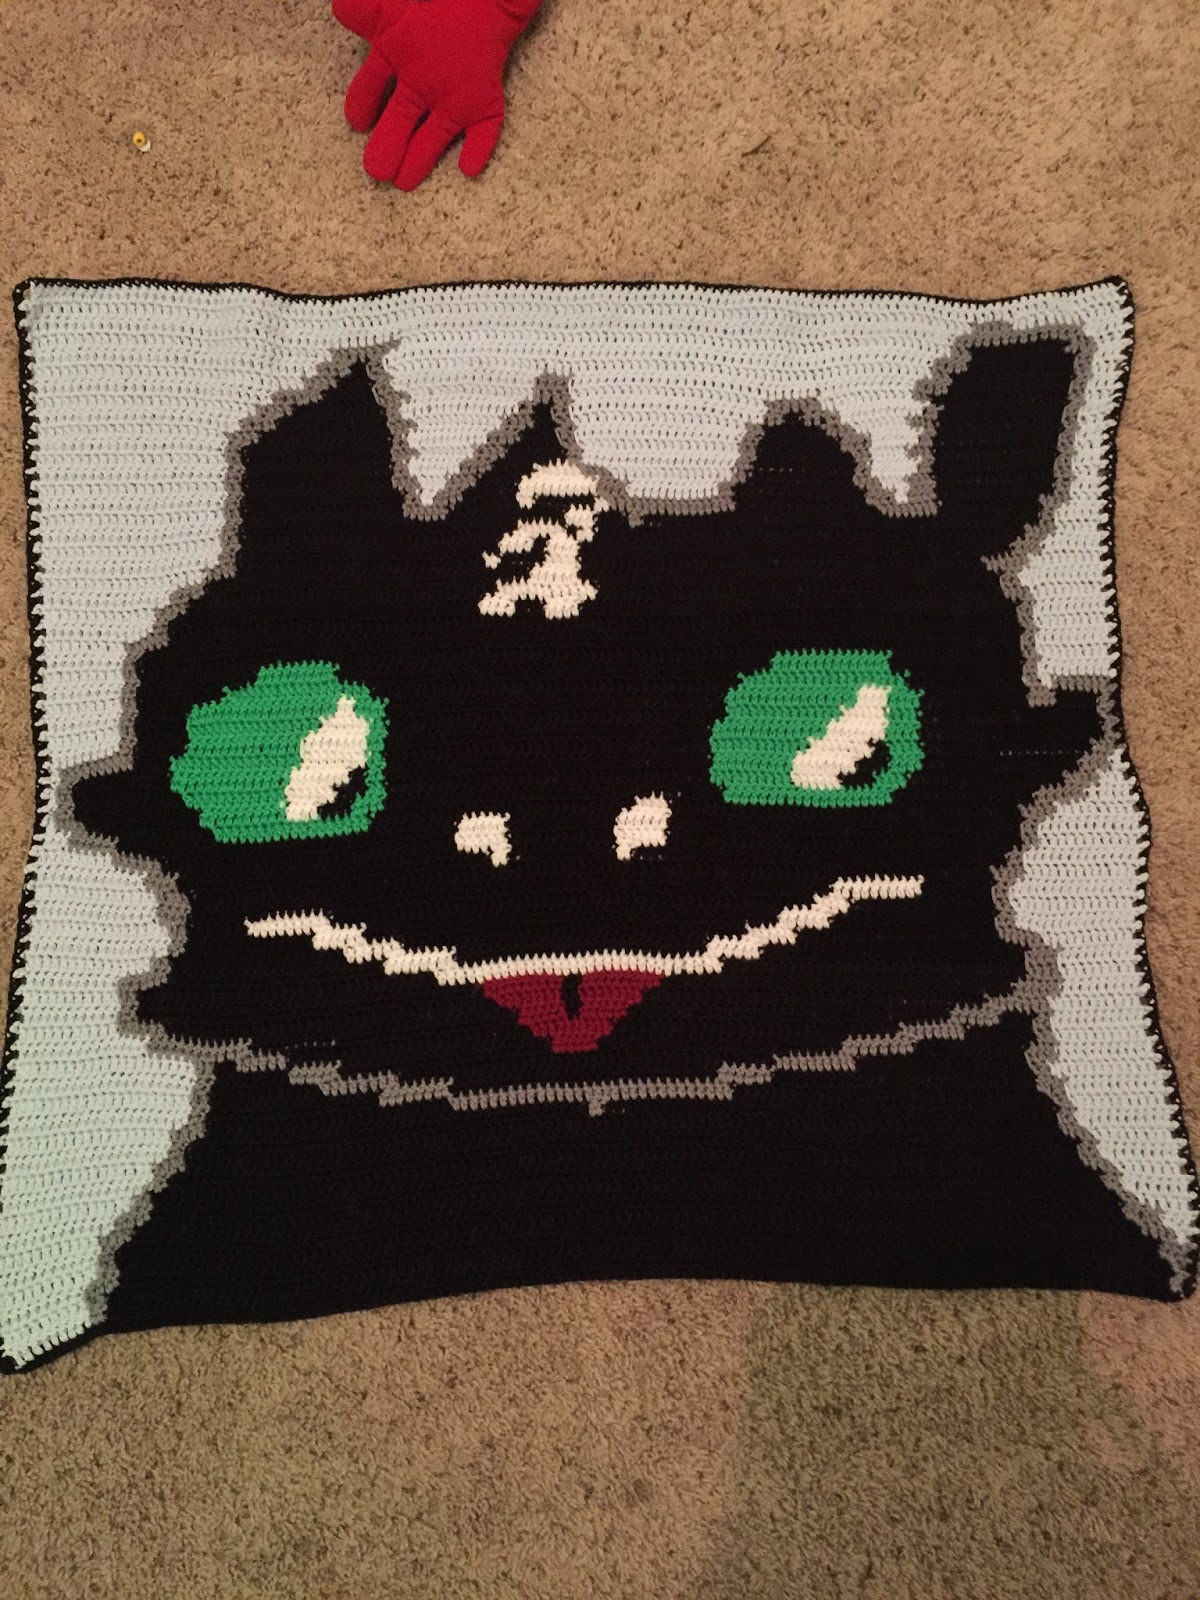 A Hook in Time: Toothless Dragon inspired infant blanket